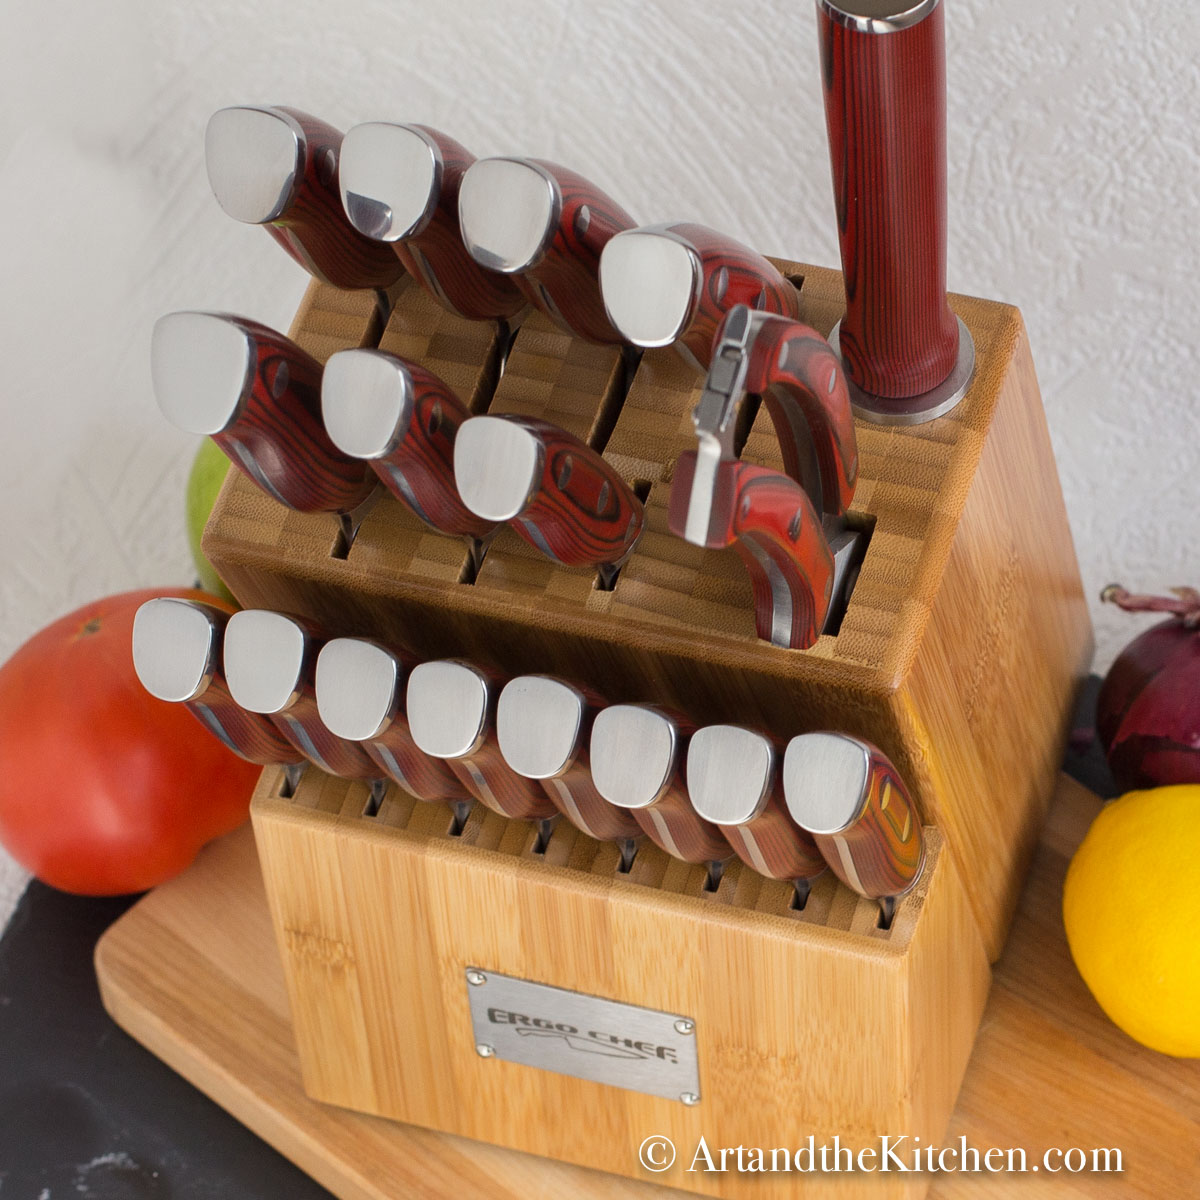 Wood knife block filled with set of knives on wood cutting board with fruit and vegetables in background.